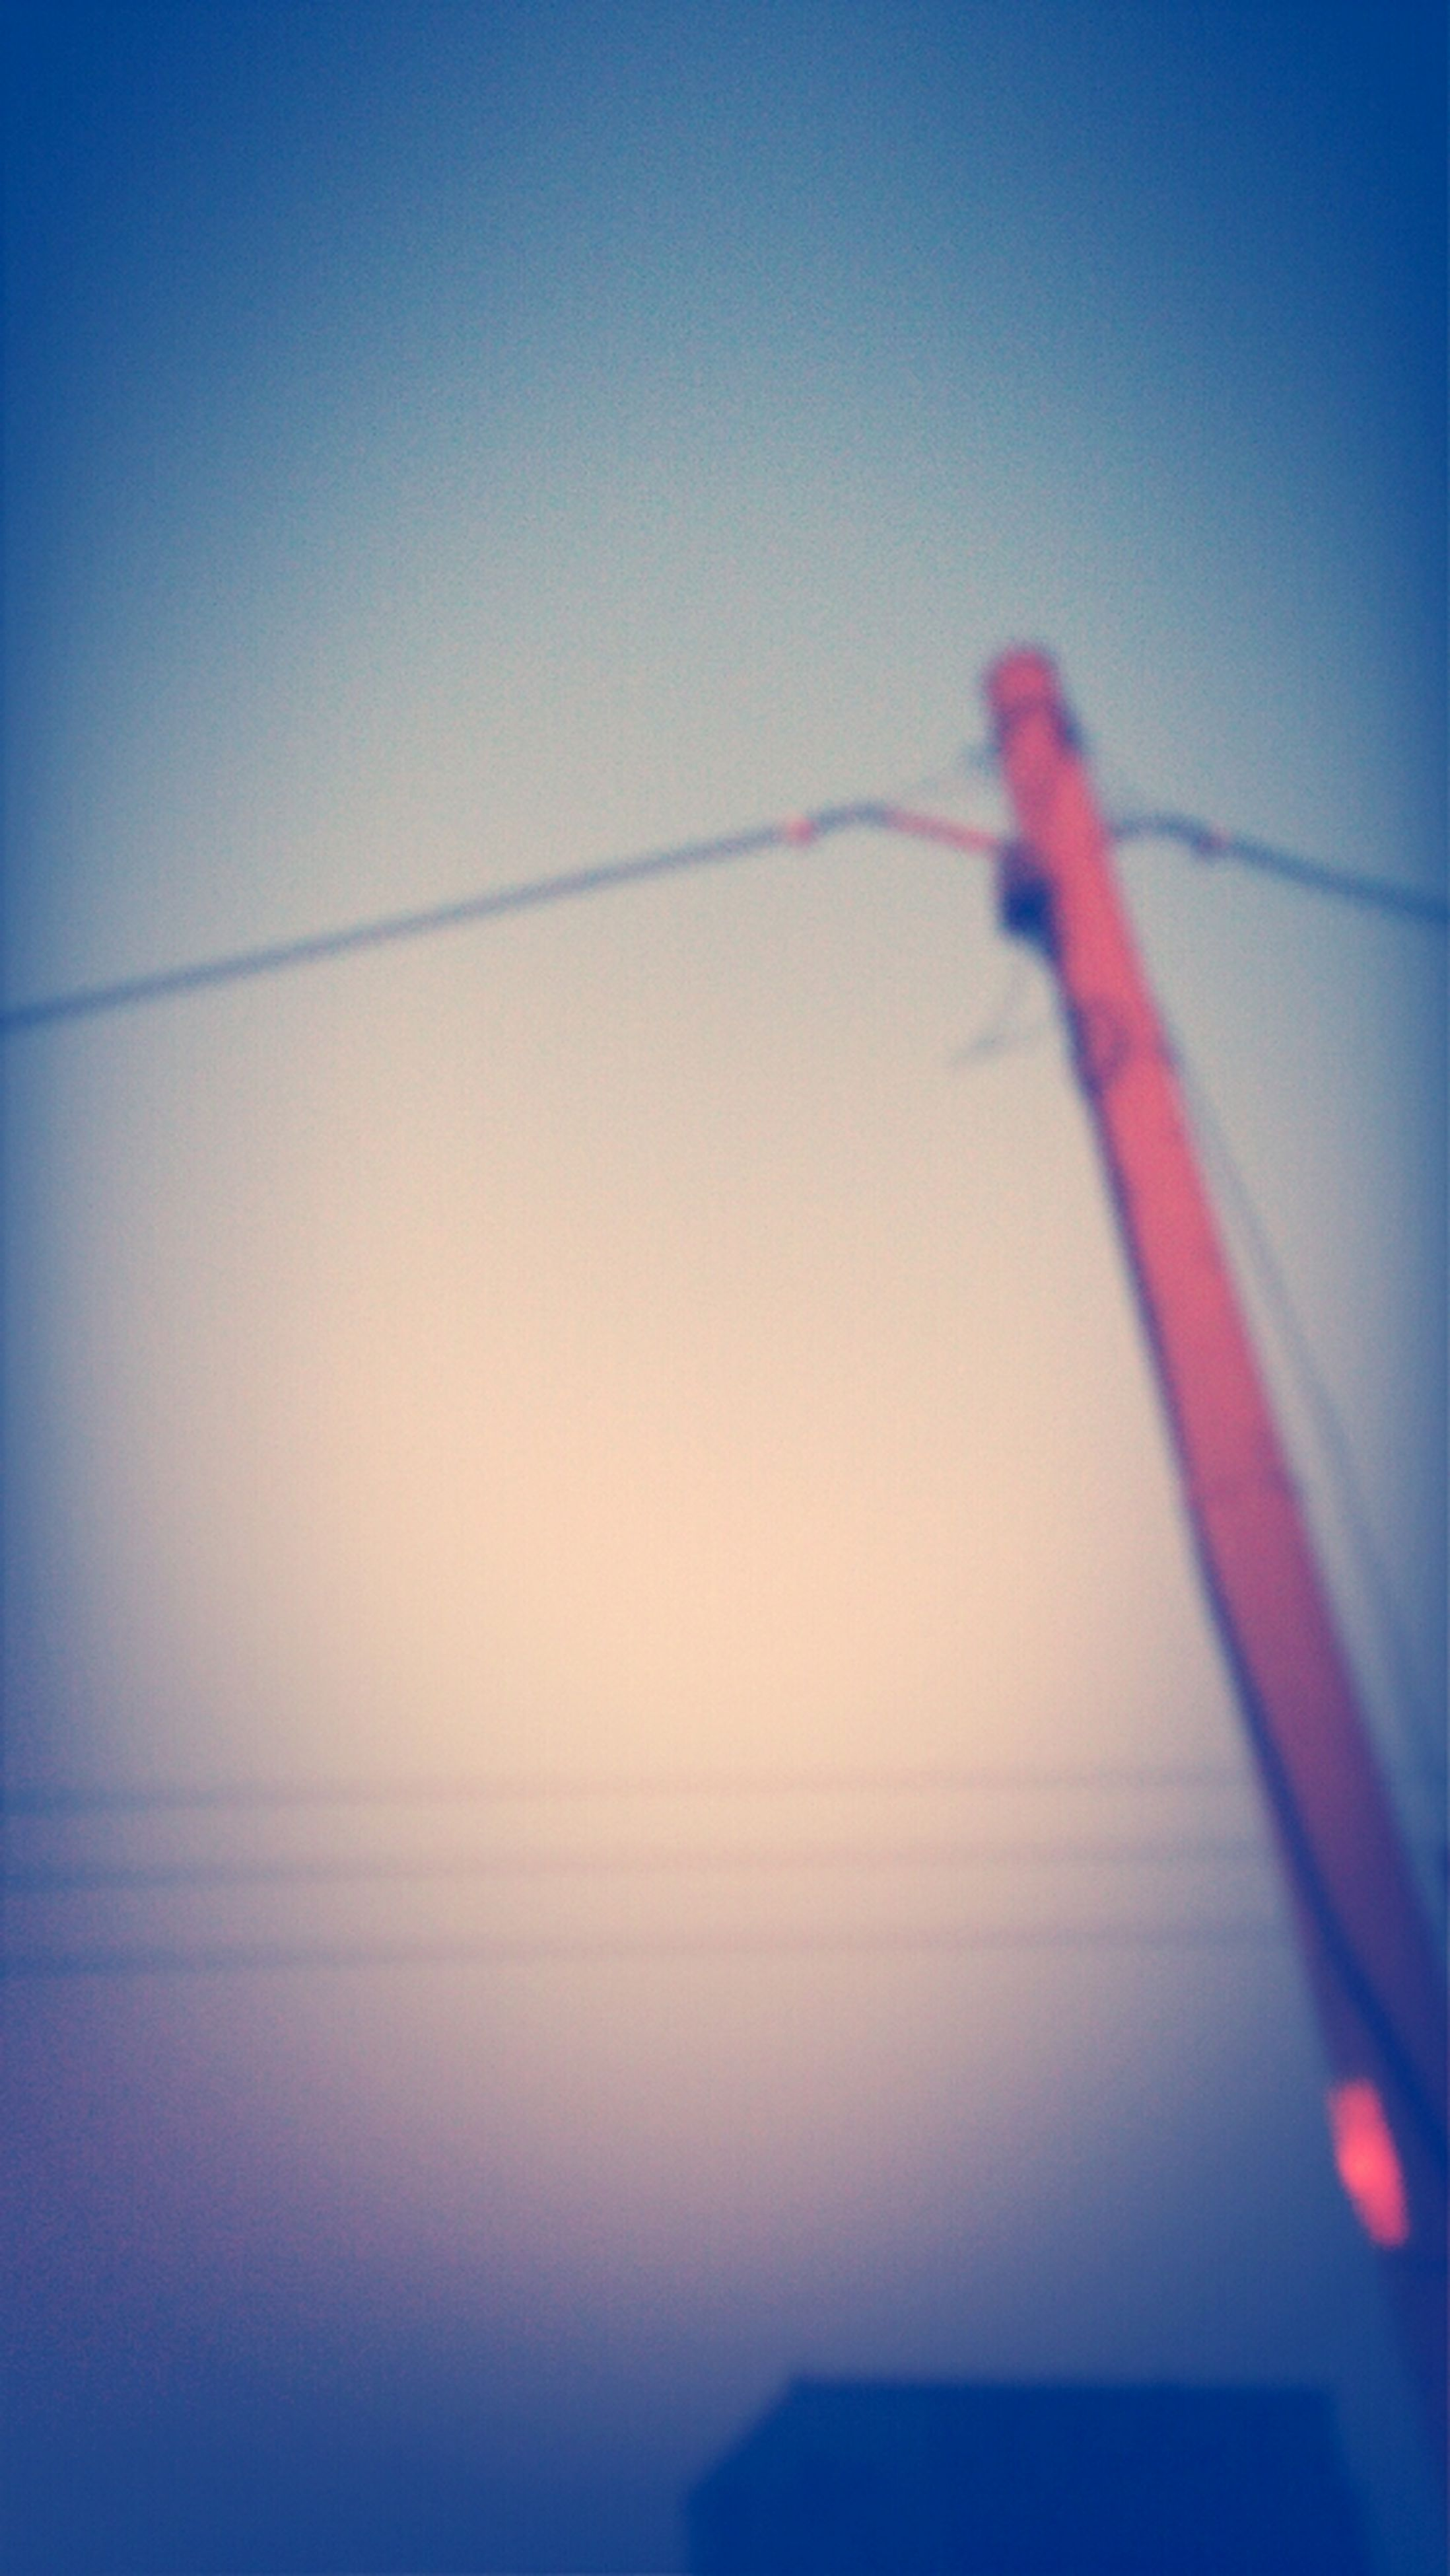 blue, clear sky, copy space, low angle view, electricity, cable, nature, no people, outdoors, sky, connection, beauty in nature, tranquility, dusk, close-up, technology, power supply, day, power line, lighting equipment